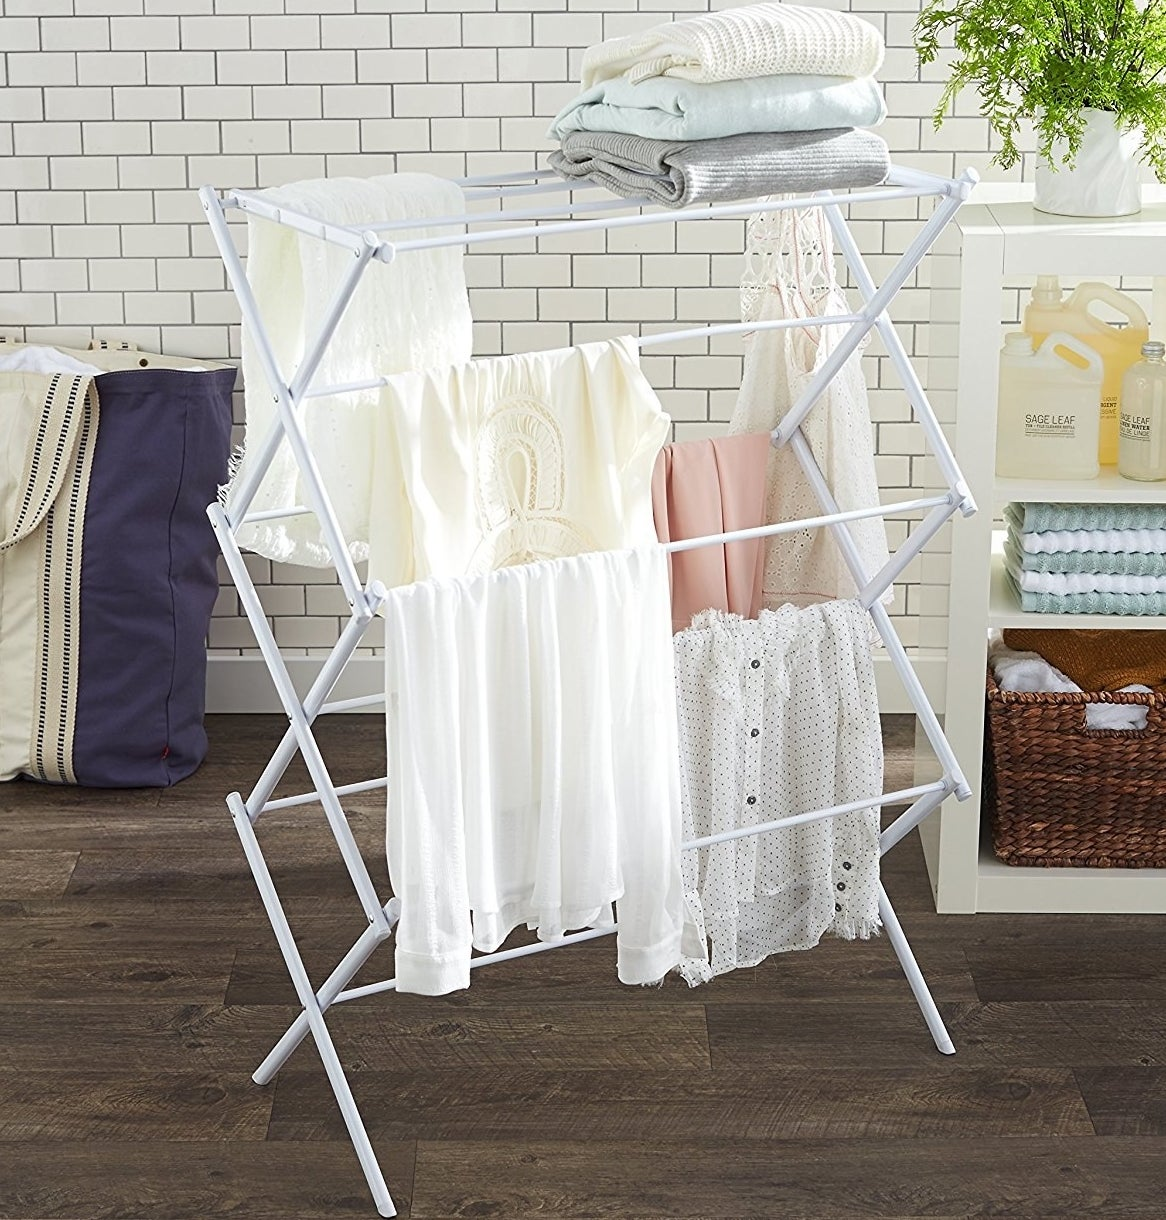 23 things that 39 ll help you get the laundry room of your dreams - Laundry drying racks for small spaces property ...